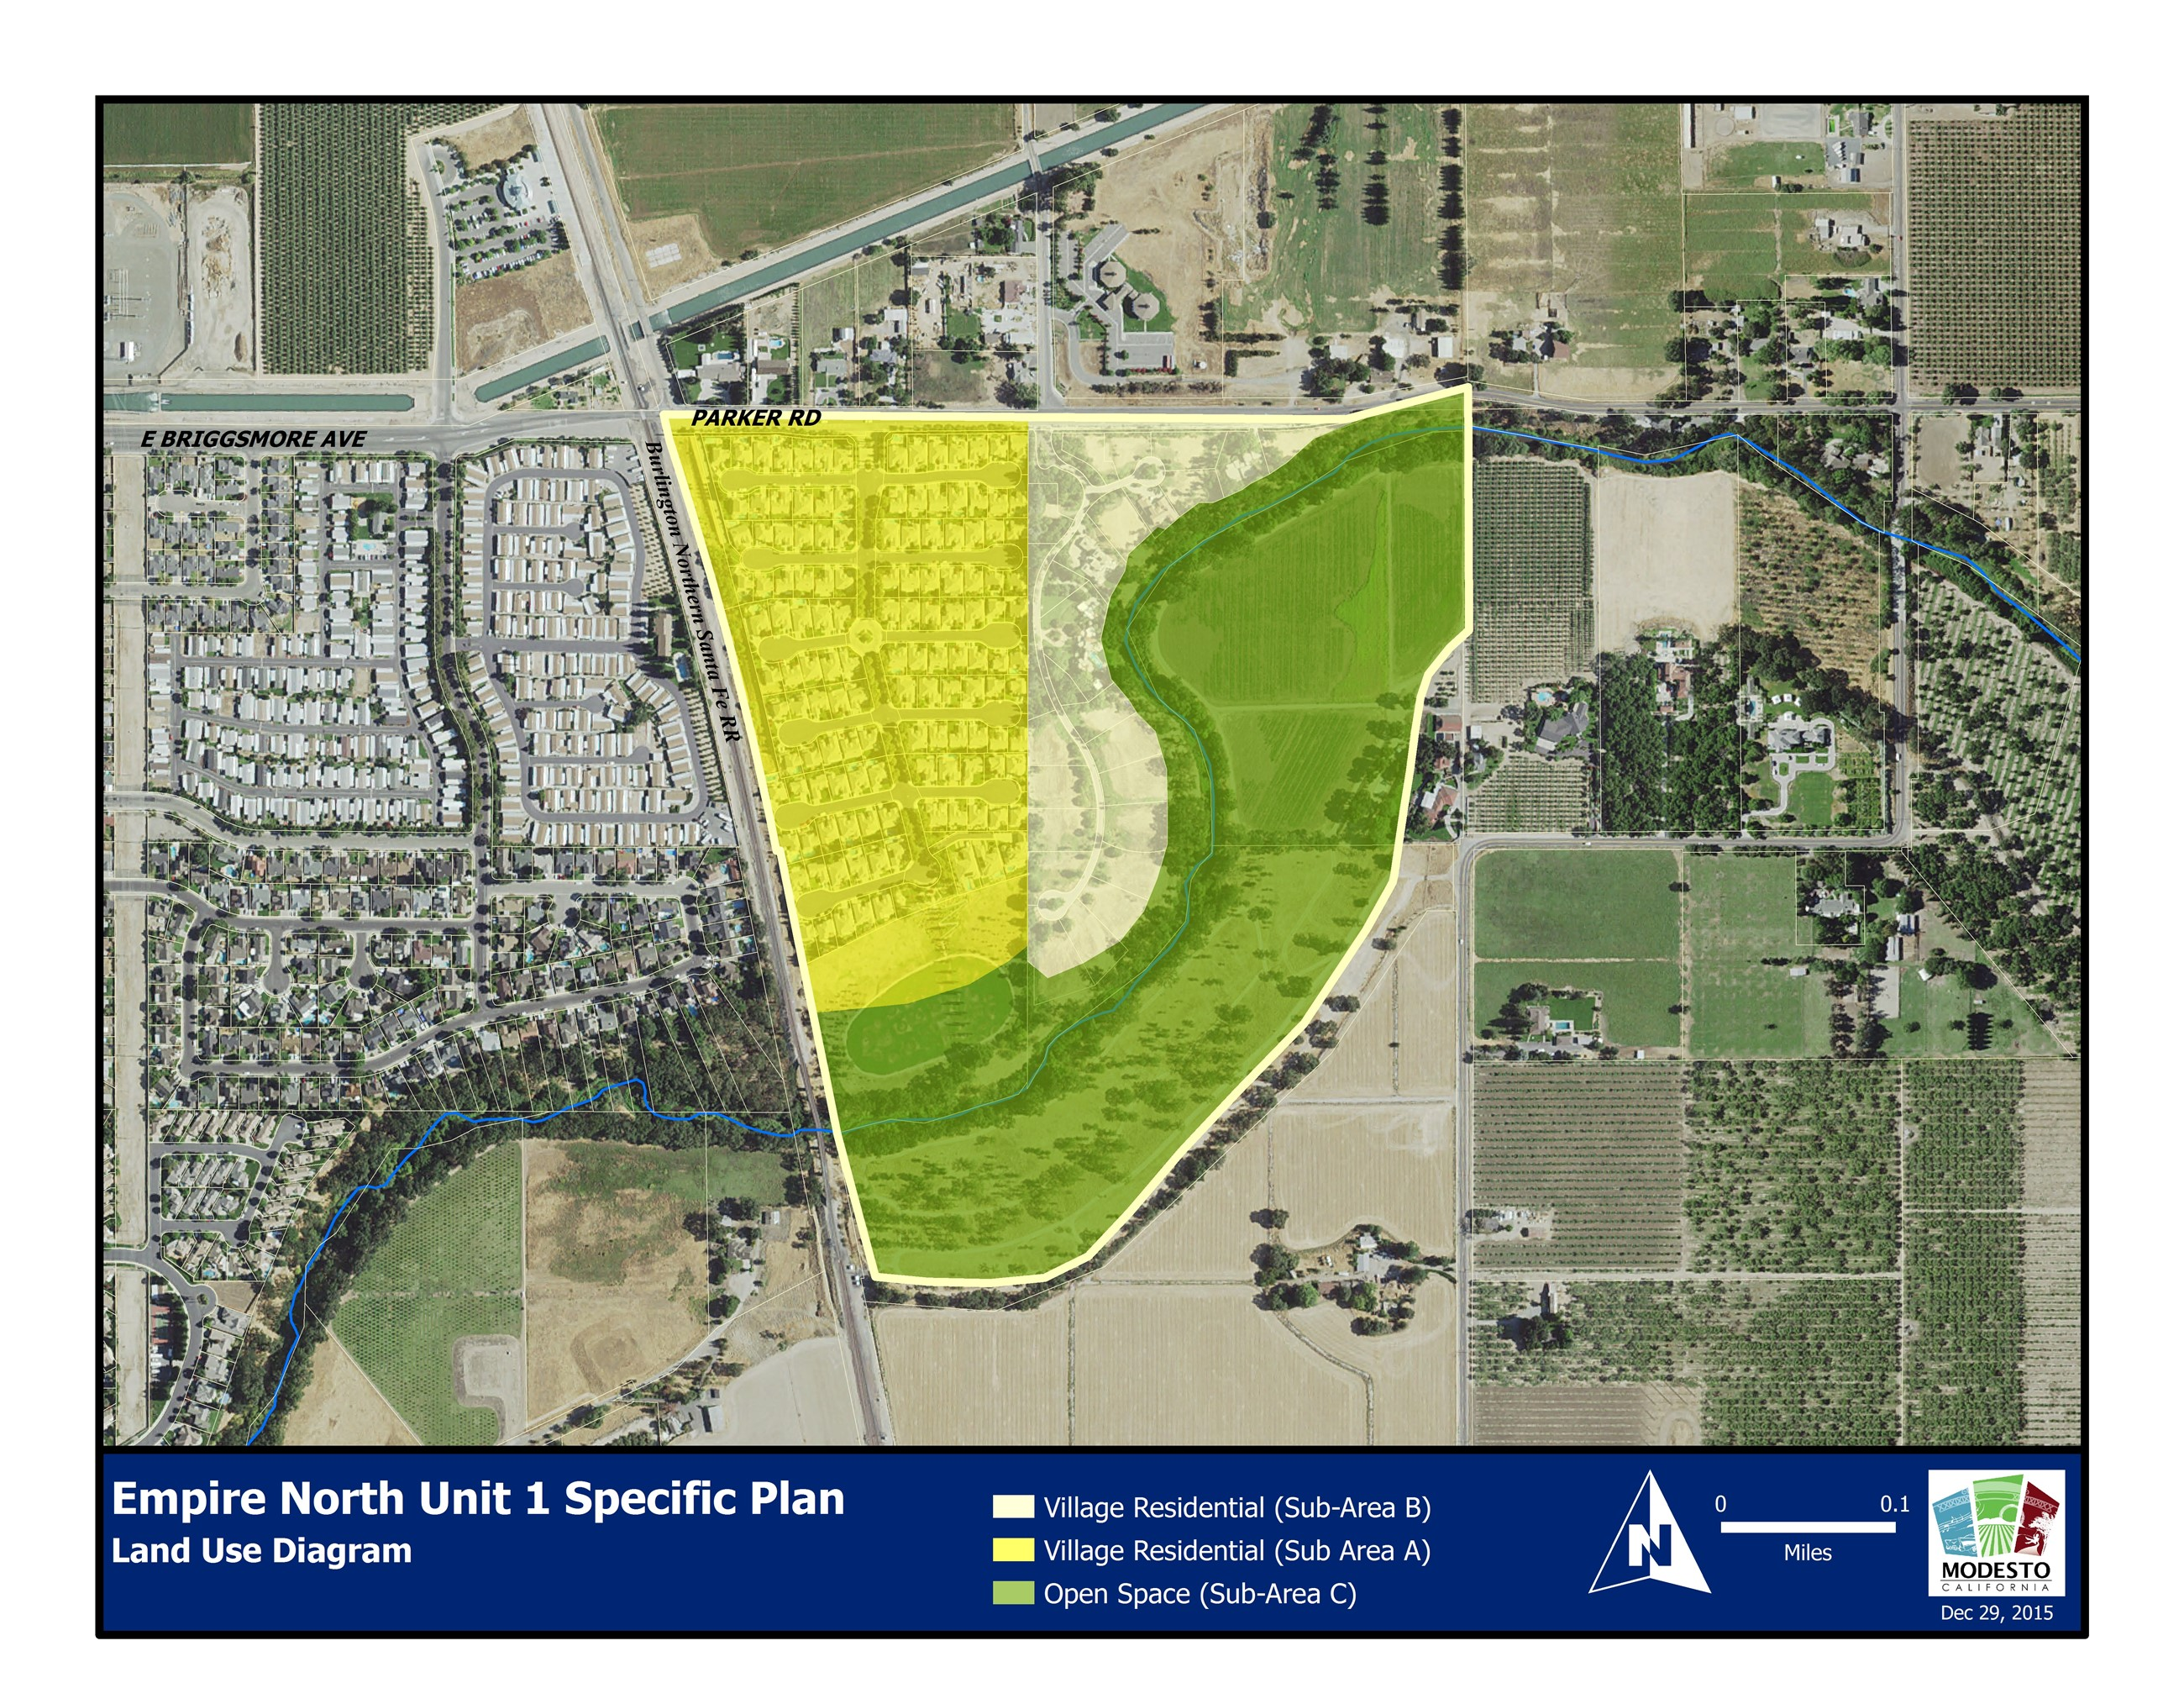 Empire North Specific Plan Land Use Diagram